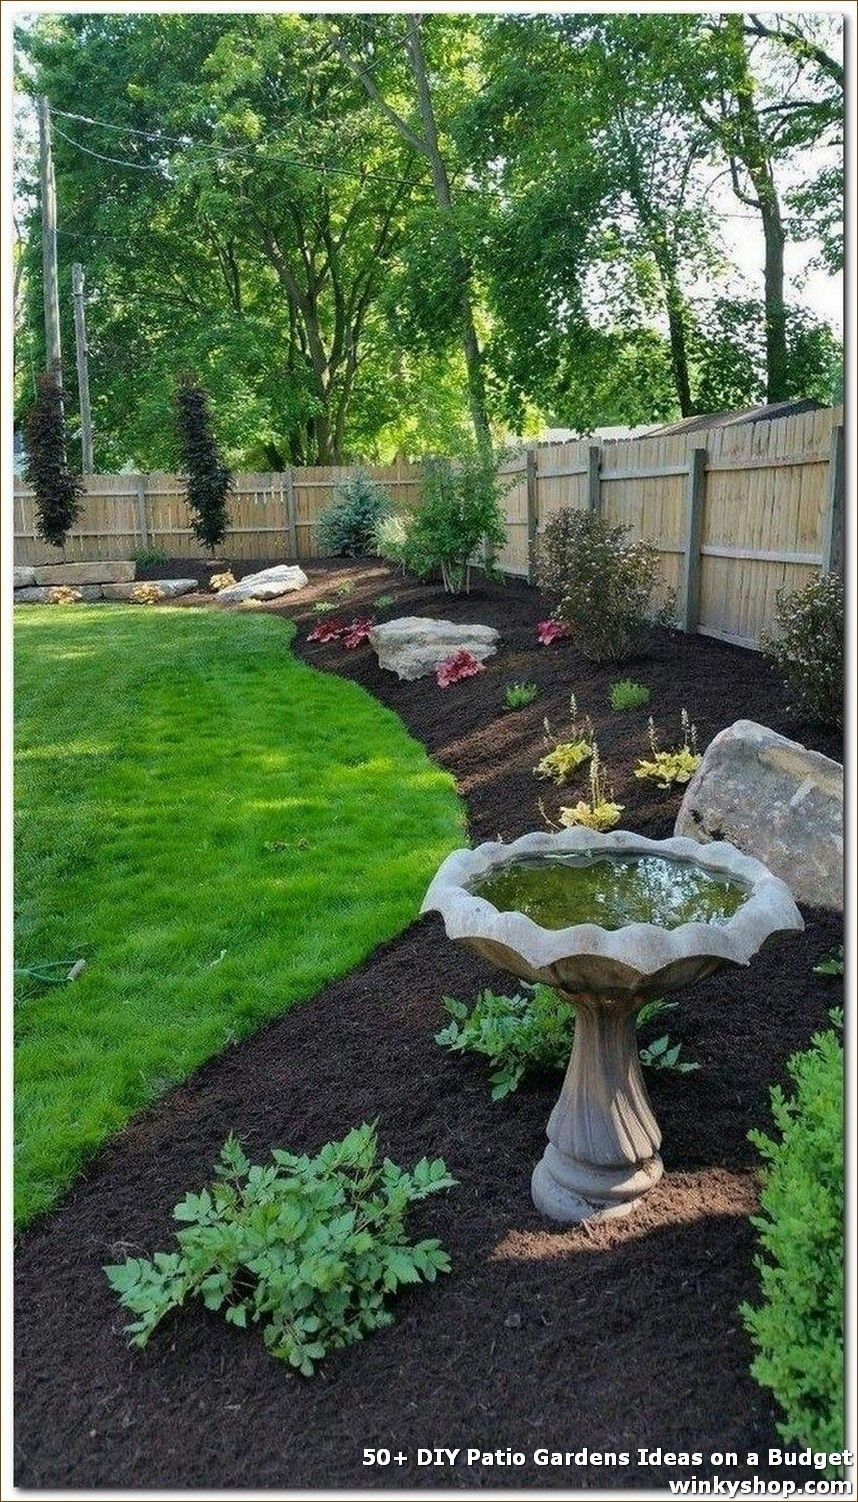 50 Diy Patio Gardens Ideas On A Budget Full The Look With Some Good Furnishings And Also You In 2020 Backyard Landscaping Designs Backyard Garden Landscape Design